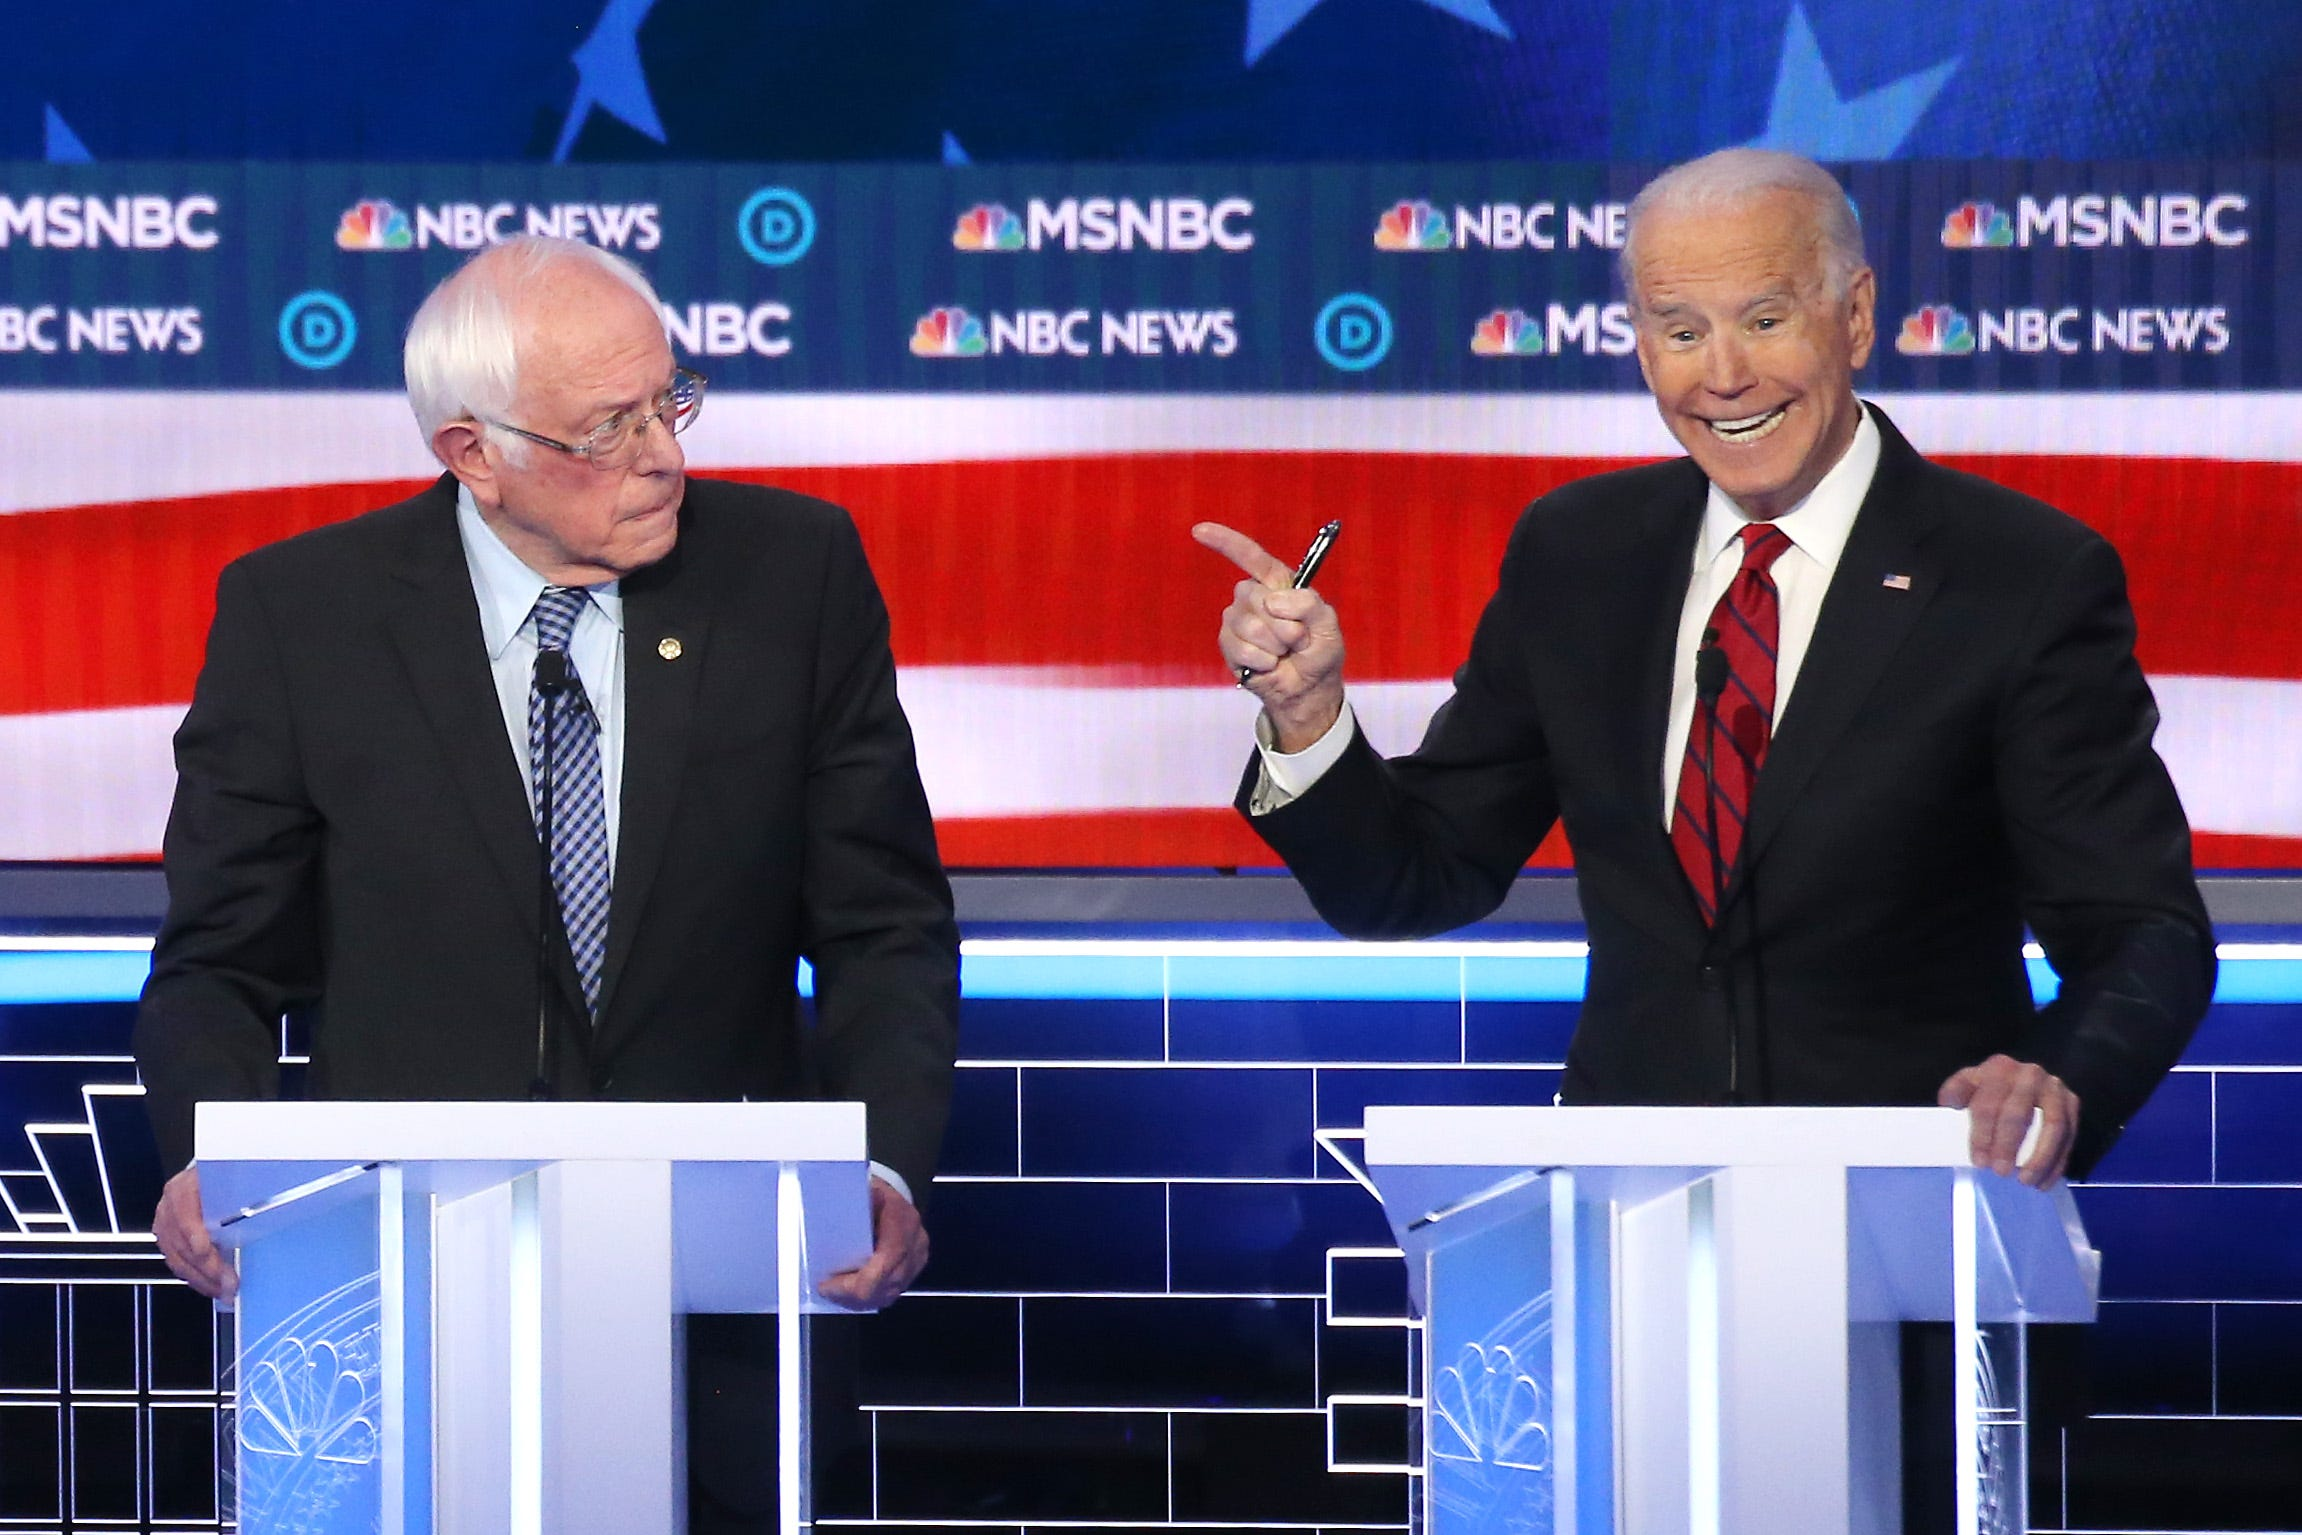 They like Bernie : Biden says Russia working to prevent him from getting nomination